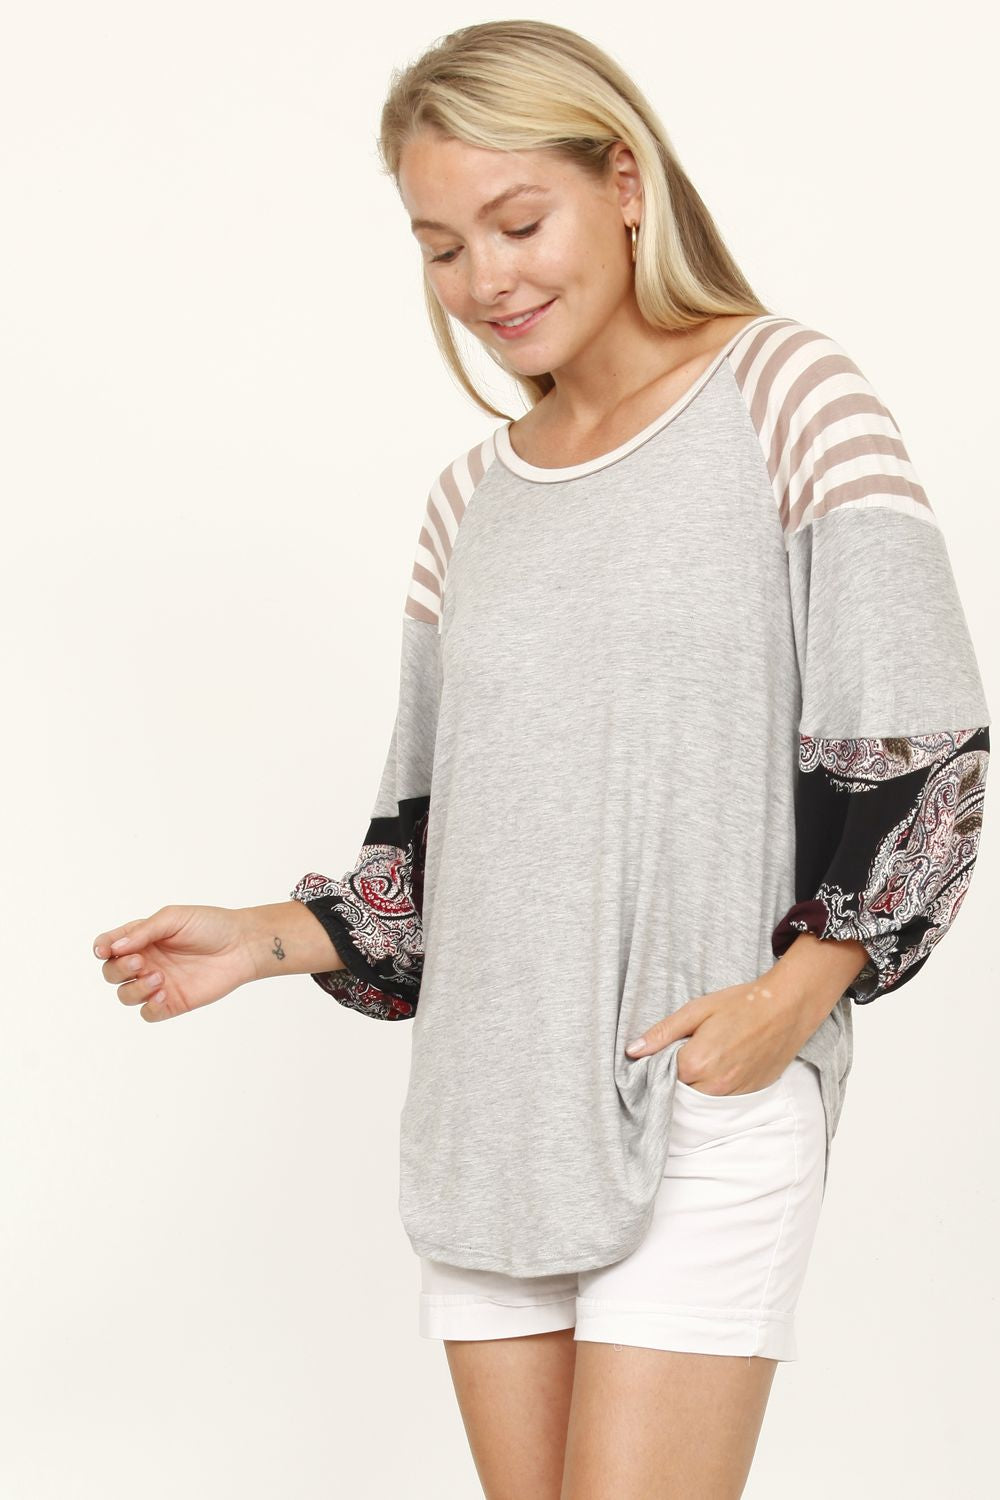 Grey Medallion 3/4 Bishop Sleeve Raglan Top